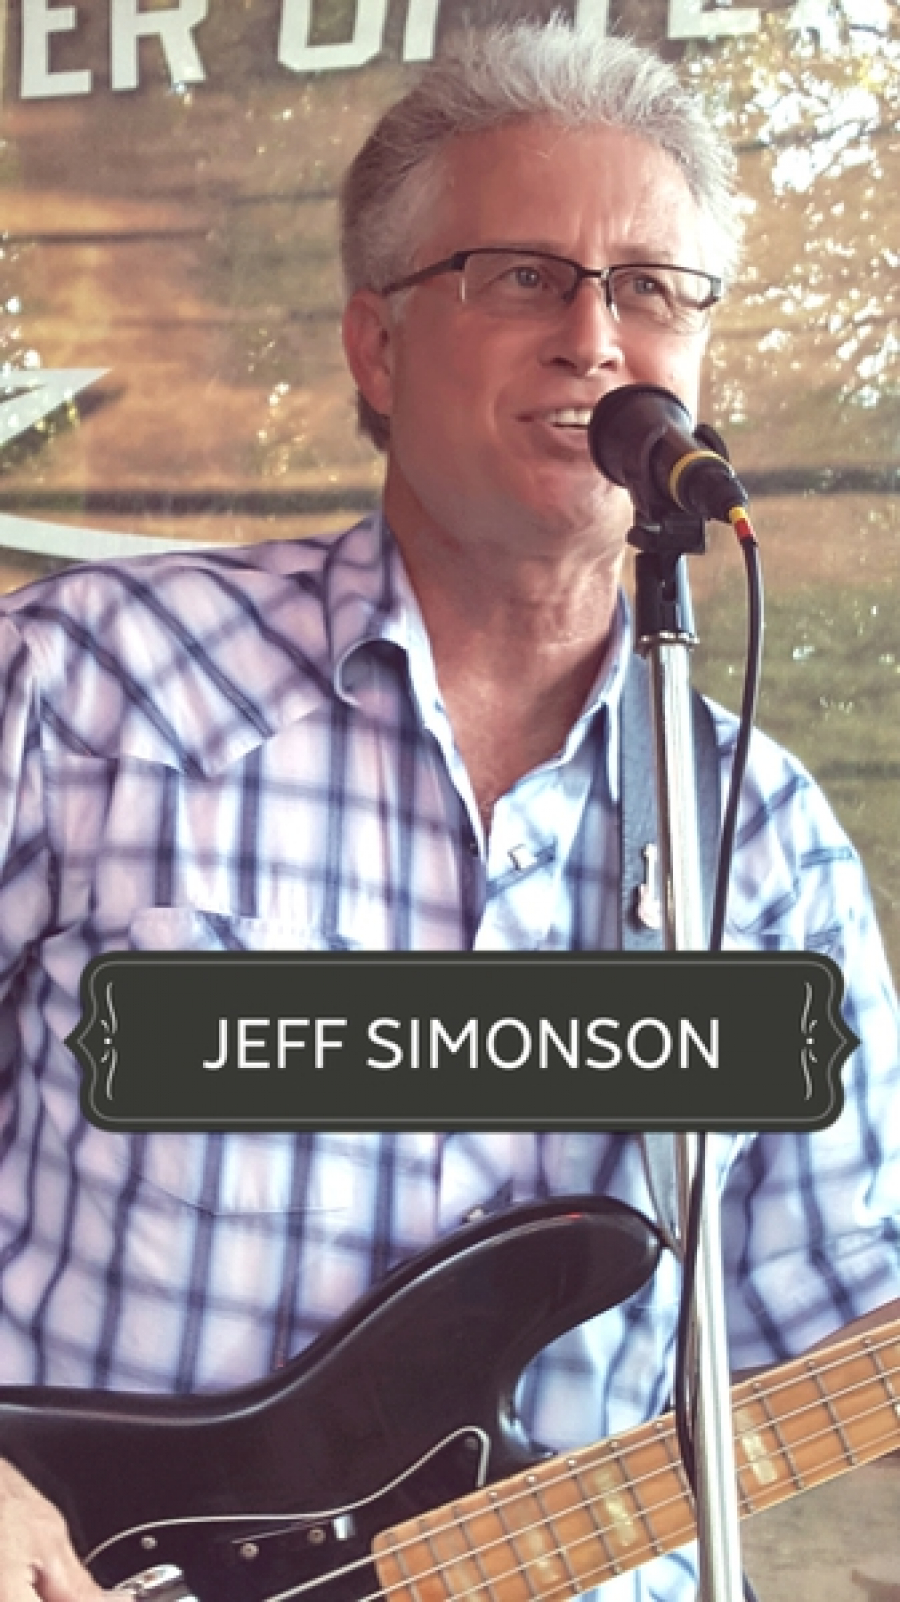 JEFF SIMONSON , VOCALS OUT TH YING YANG!!!